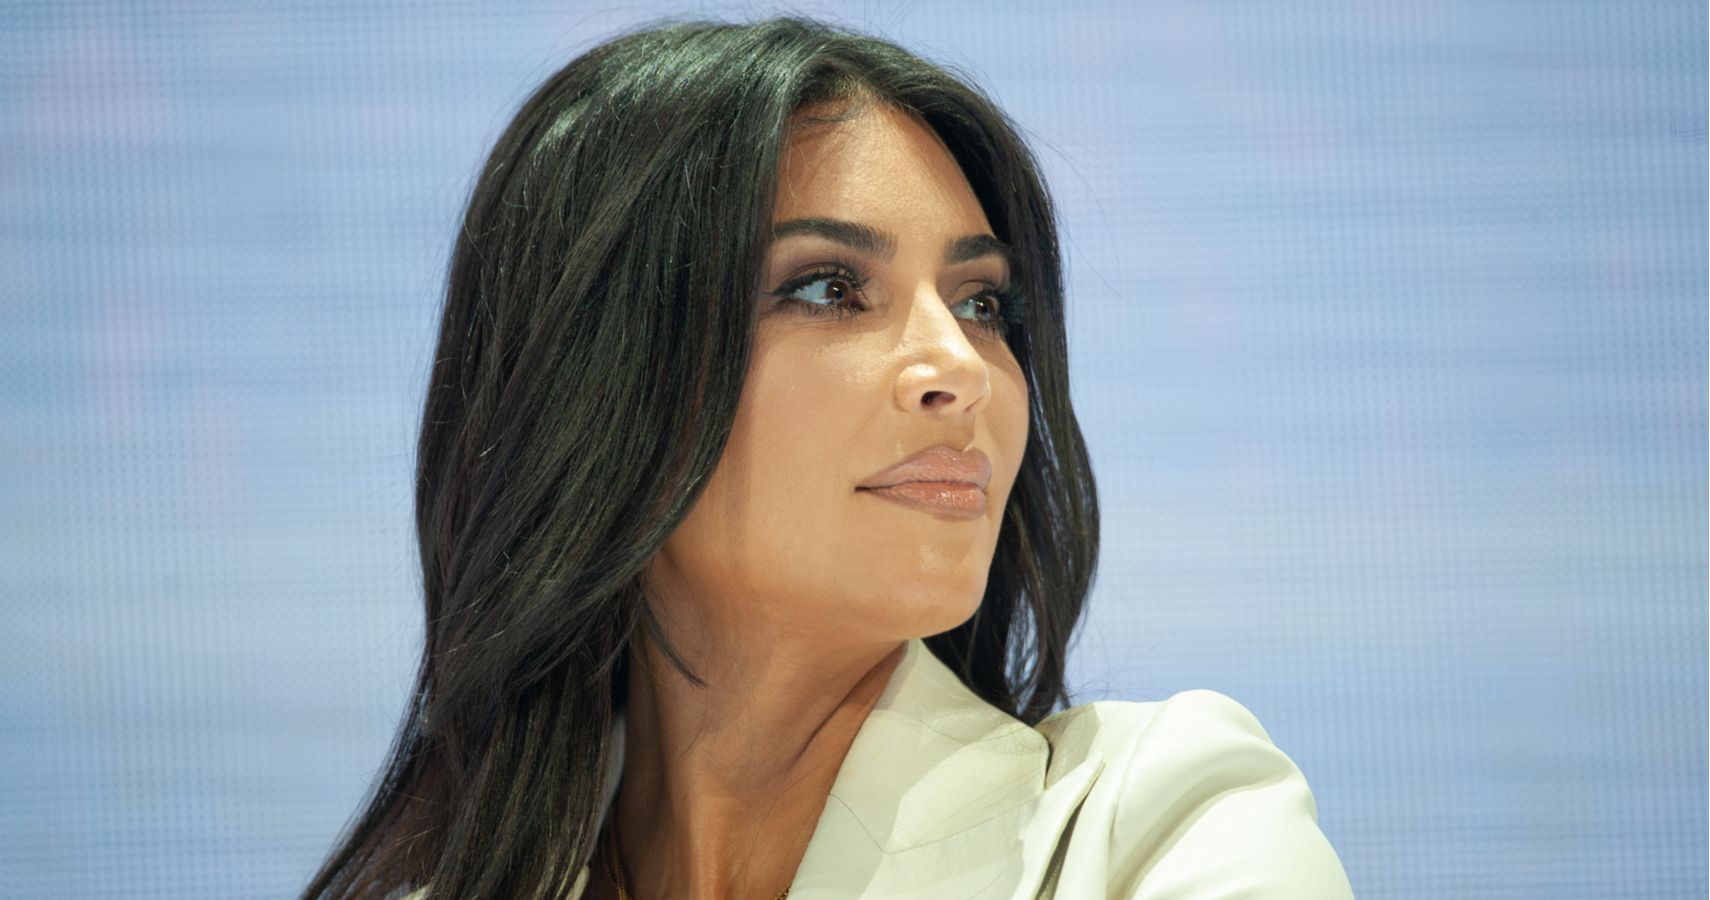 Kim Kardashian Is Officially Worth $1 Billion, Thanks To Her Business Empire